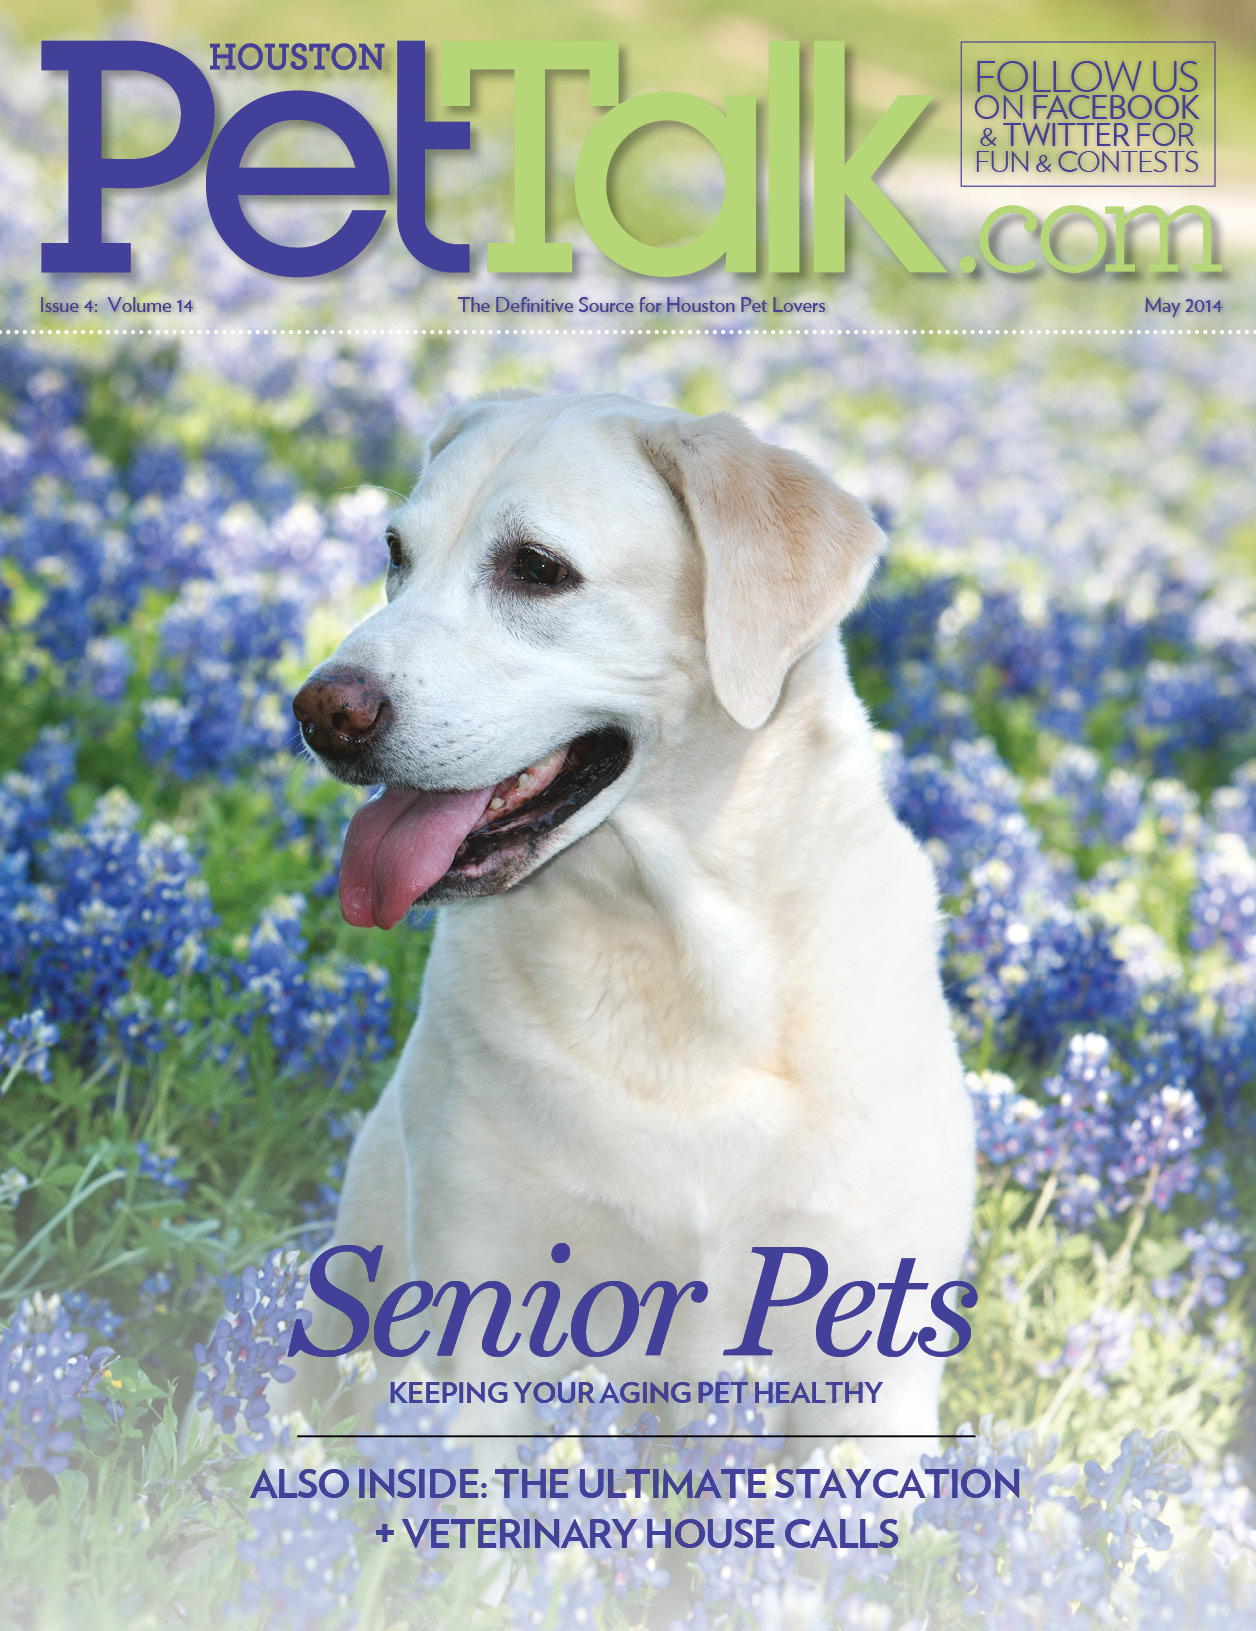 May 2014 Digital Issue of Houston PetTalk